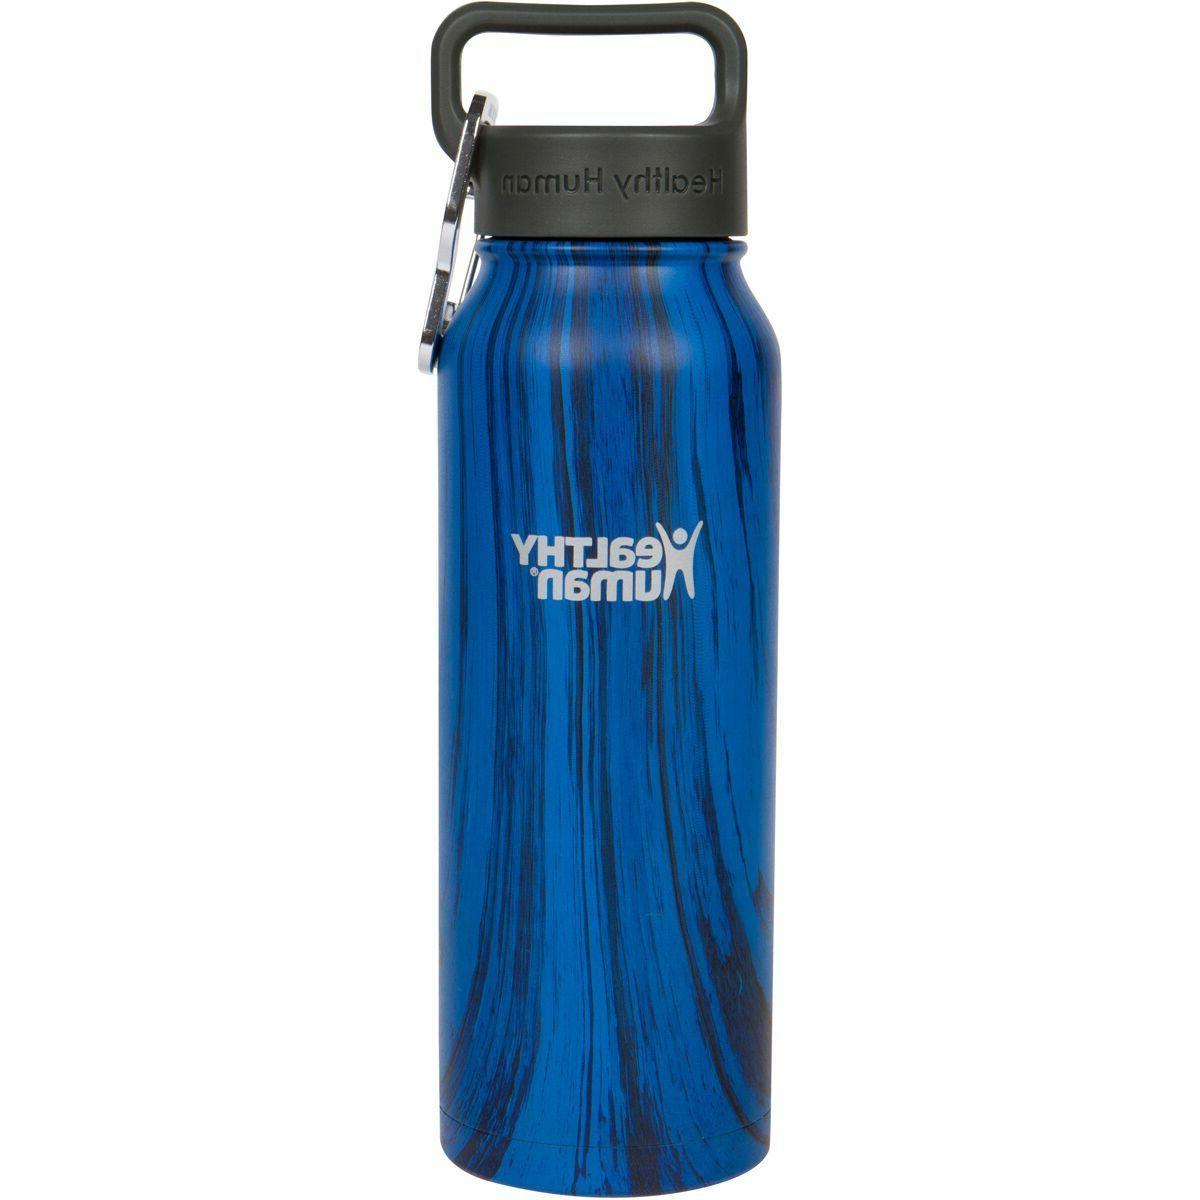 21oz midnight oak insulated stainless steel water